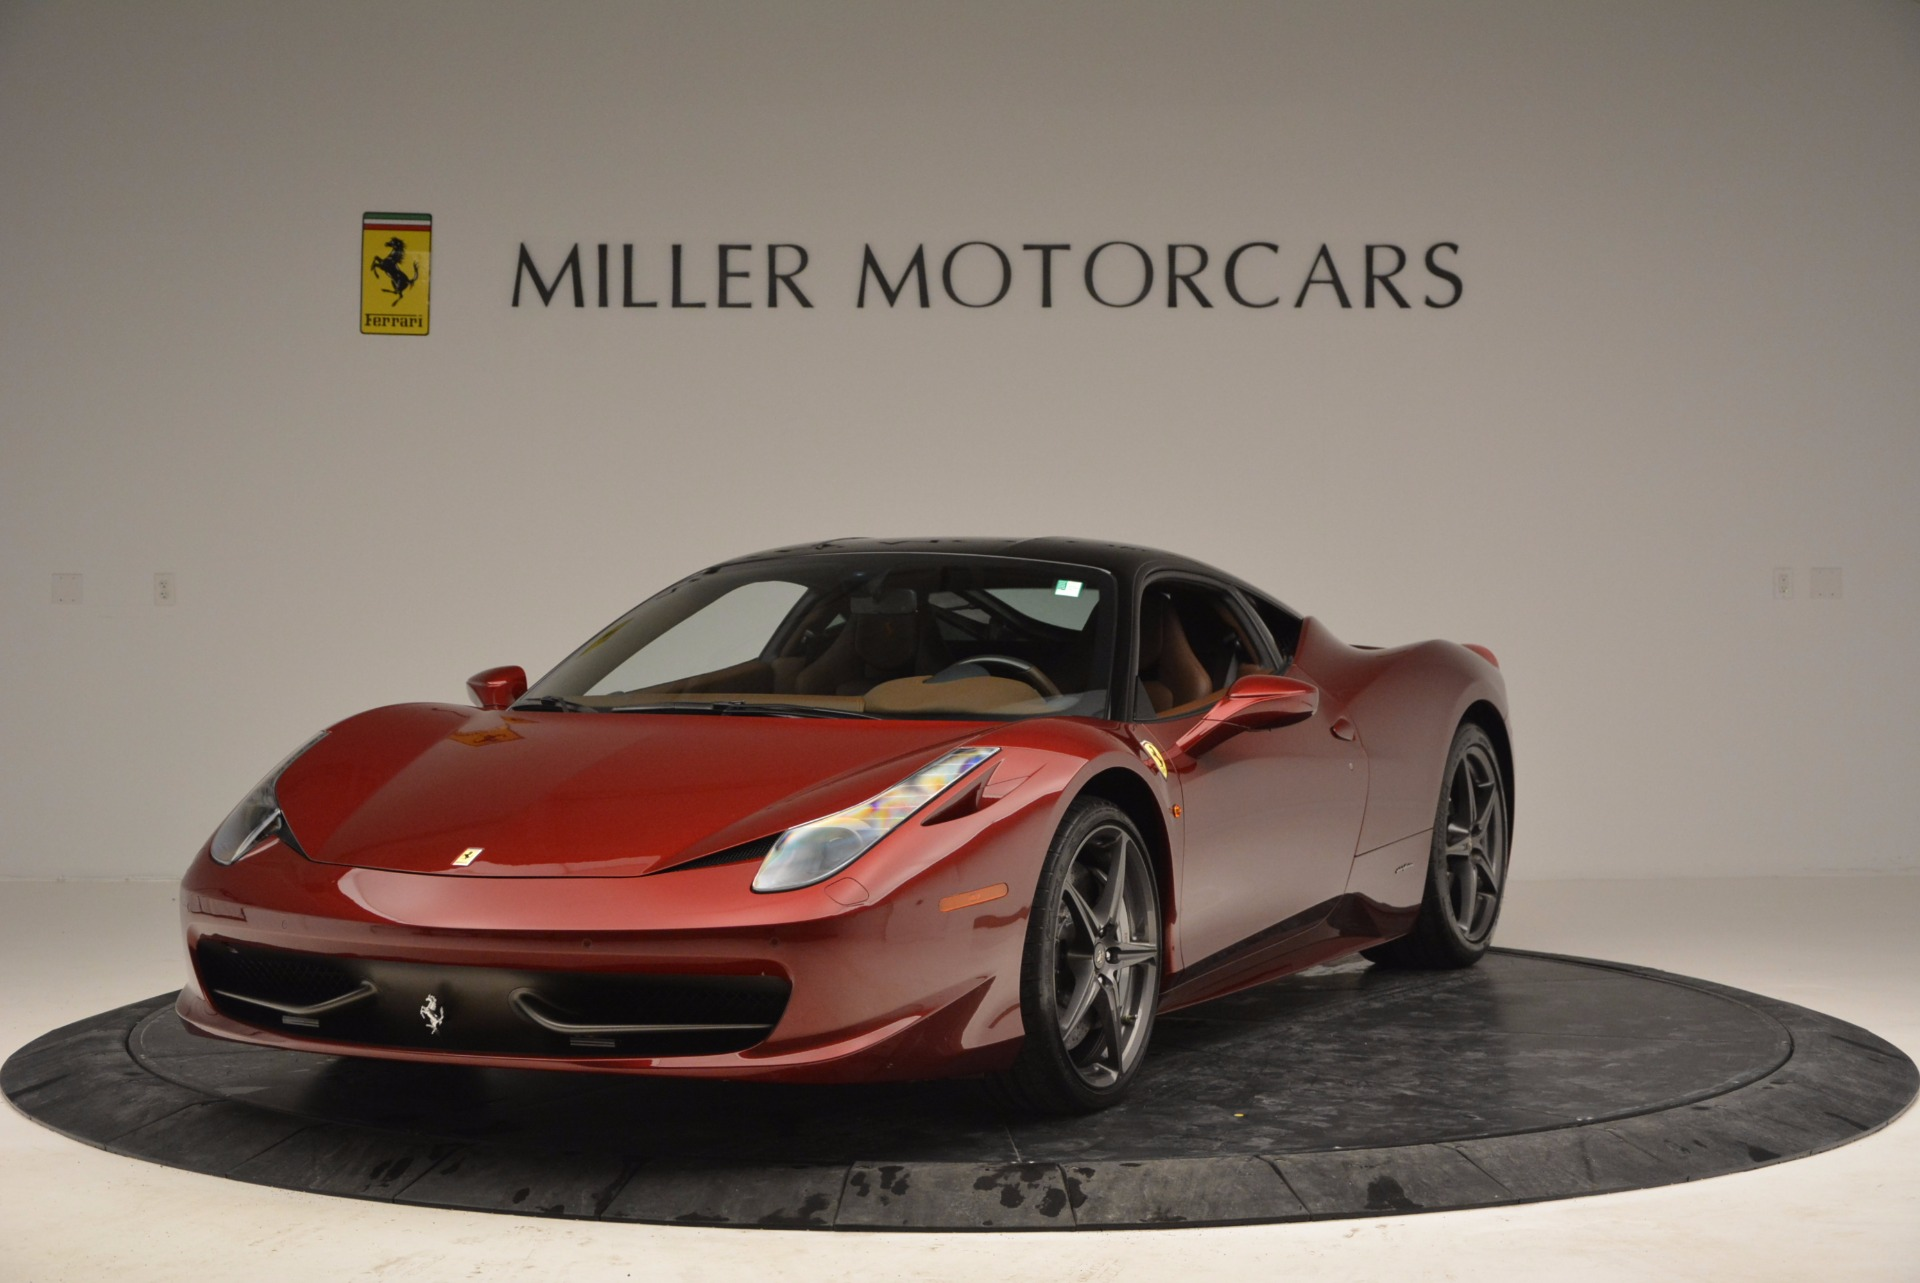 Used 2011 Ferrari 458 Italia for sale Sold at Bentley Greenwich in Greenwich CT 06830 1